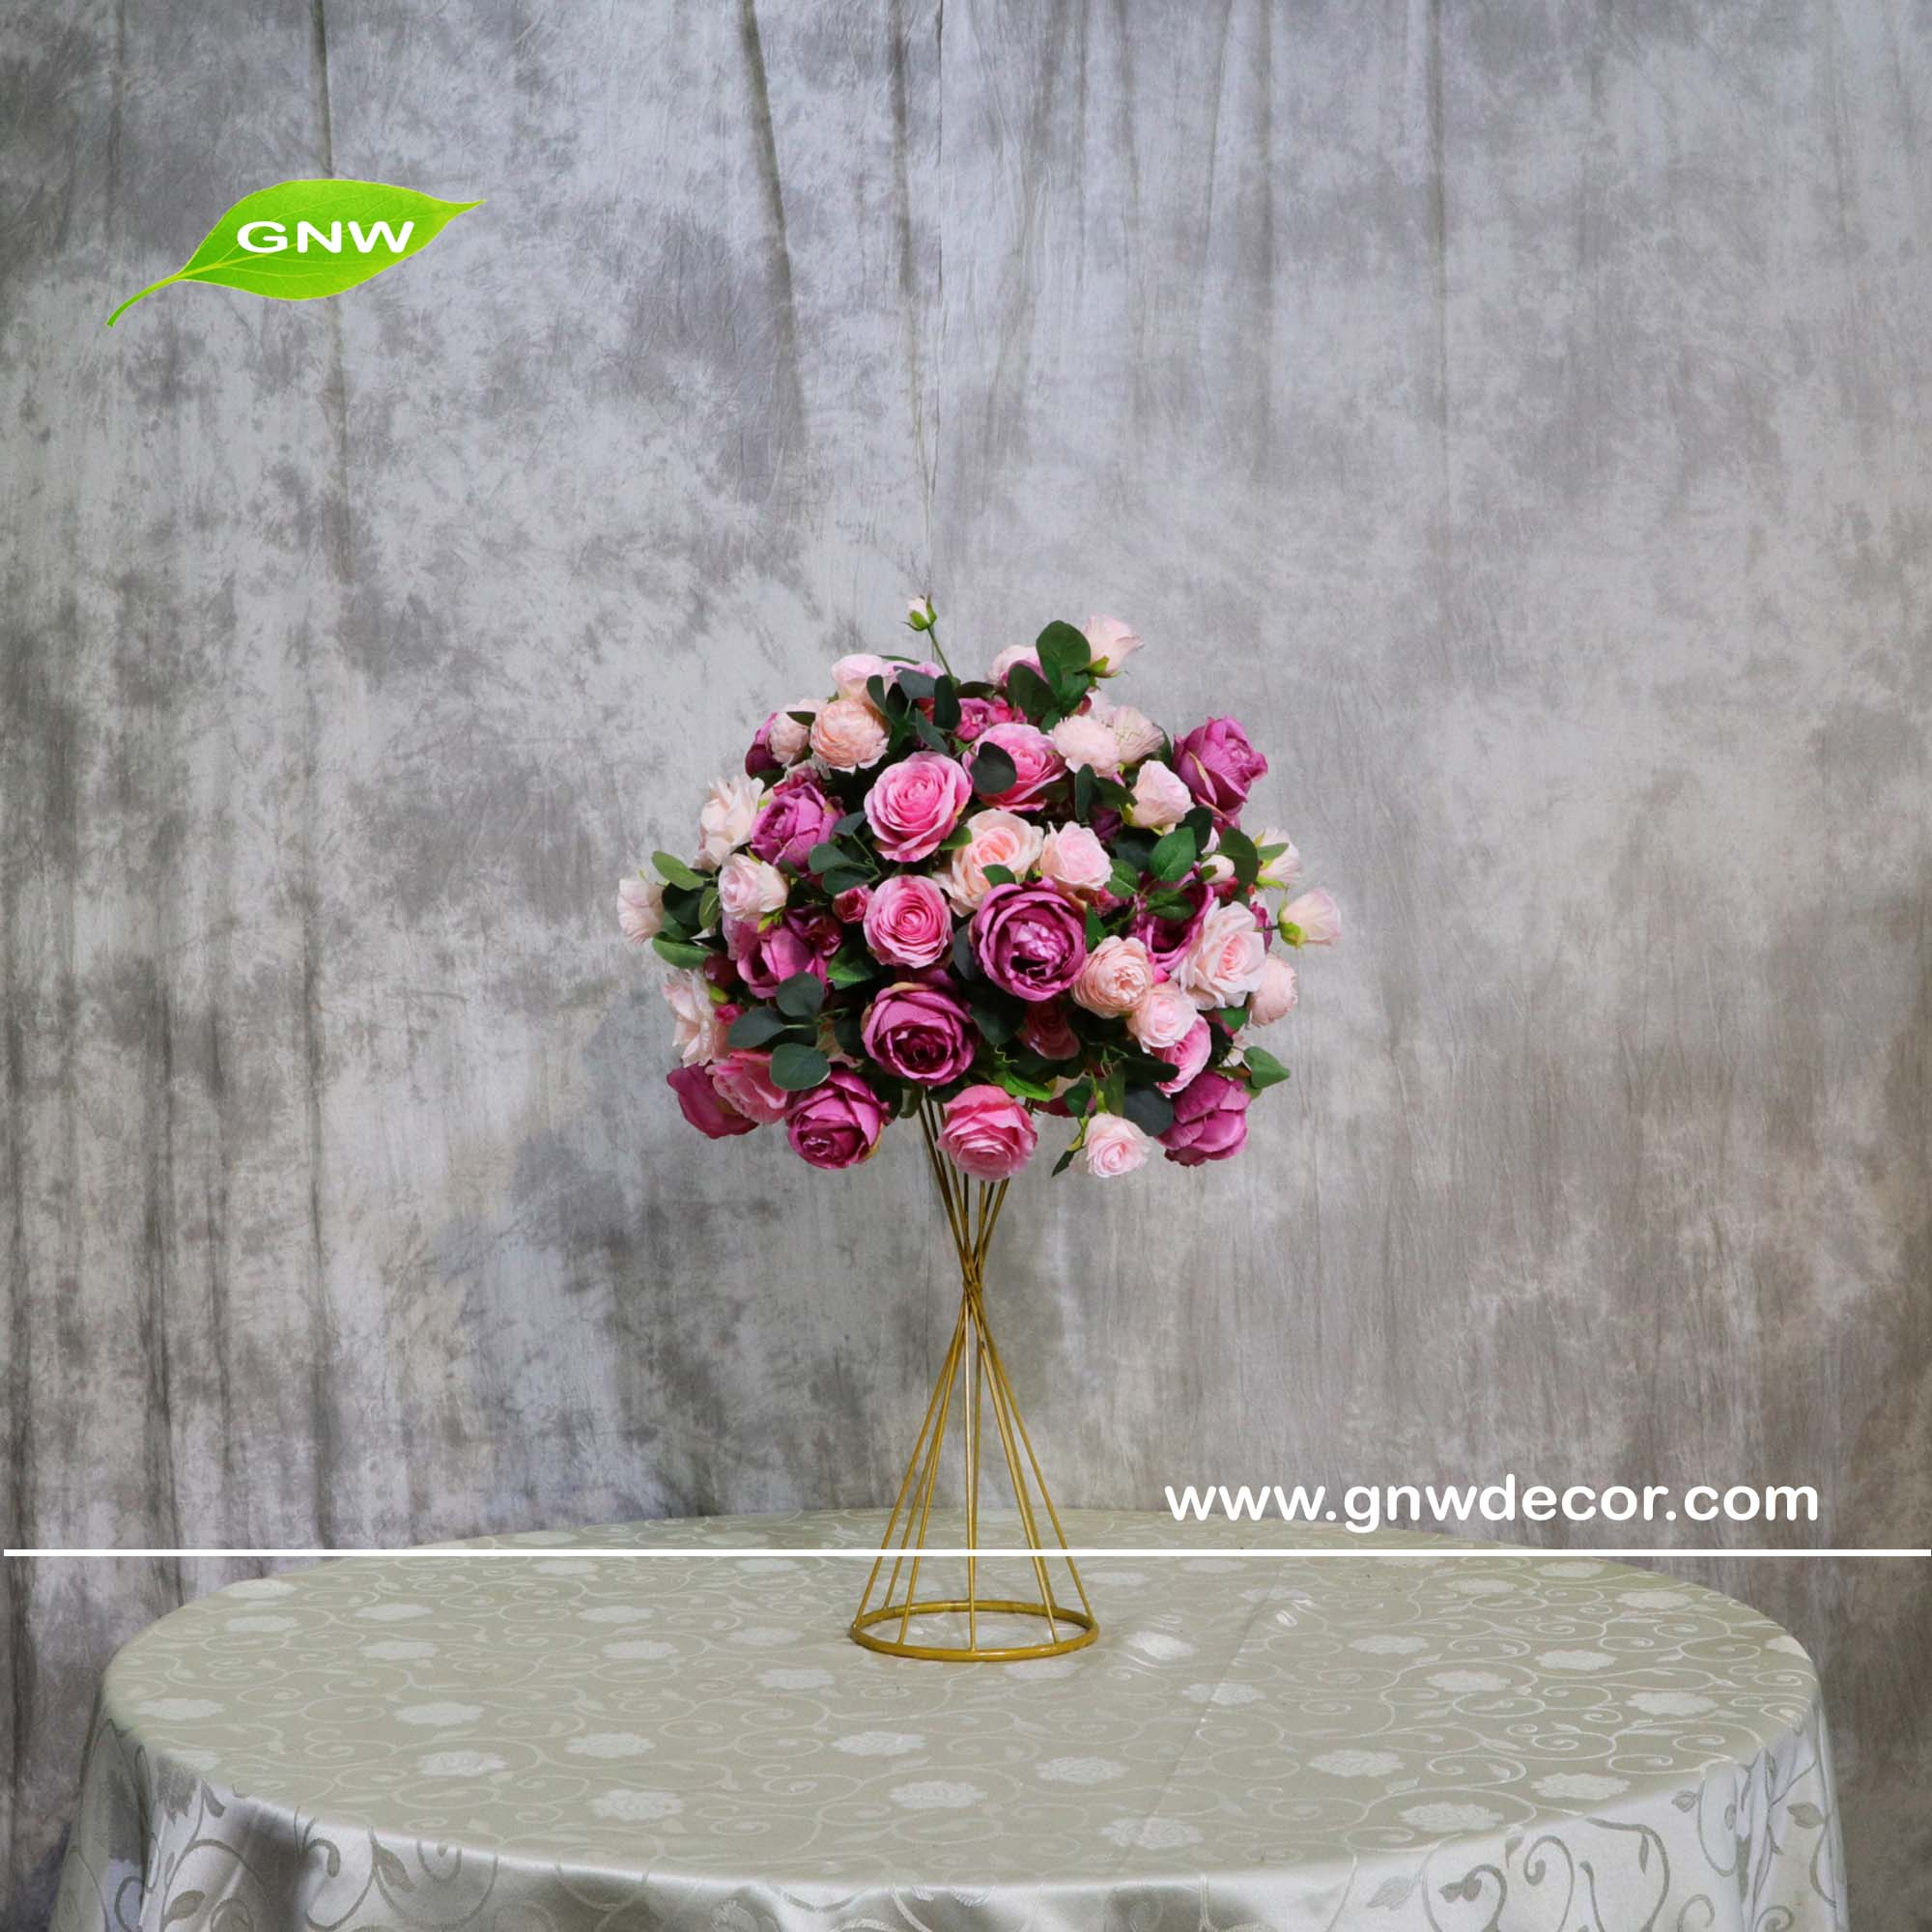 Gnw Ctr1606011 B02 Floral Flower Arrangement Ball Rainbow Colors For Centerpieces Buy Rainbow Foam Ball Dinner Table Stand Wedding Flower Centerpiece Product On Alibaba Com